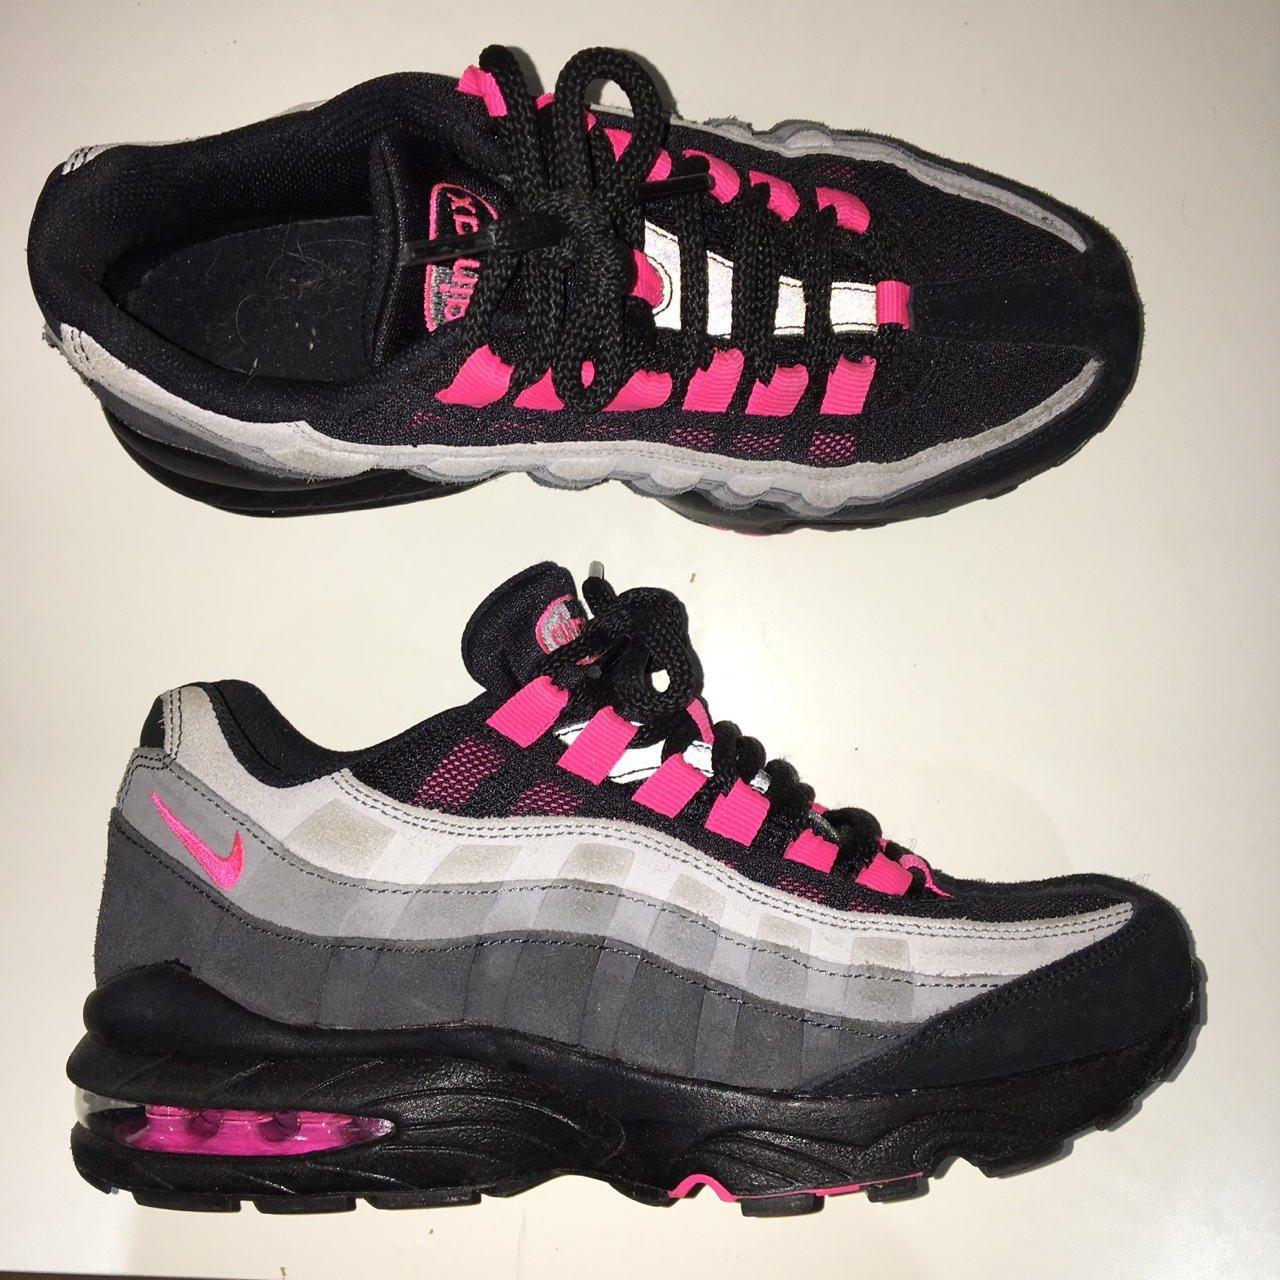 meet cc649 31155 Nike Air Max 95 Junior in Pink, Black and Grey - in... - Depop